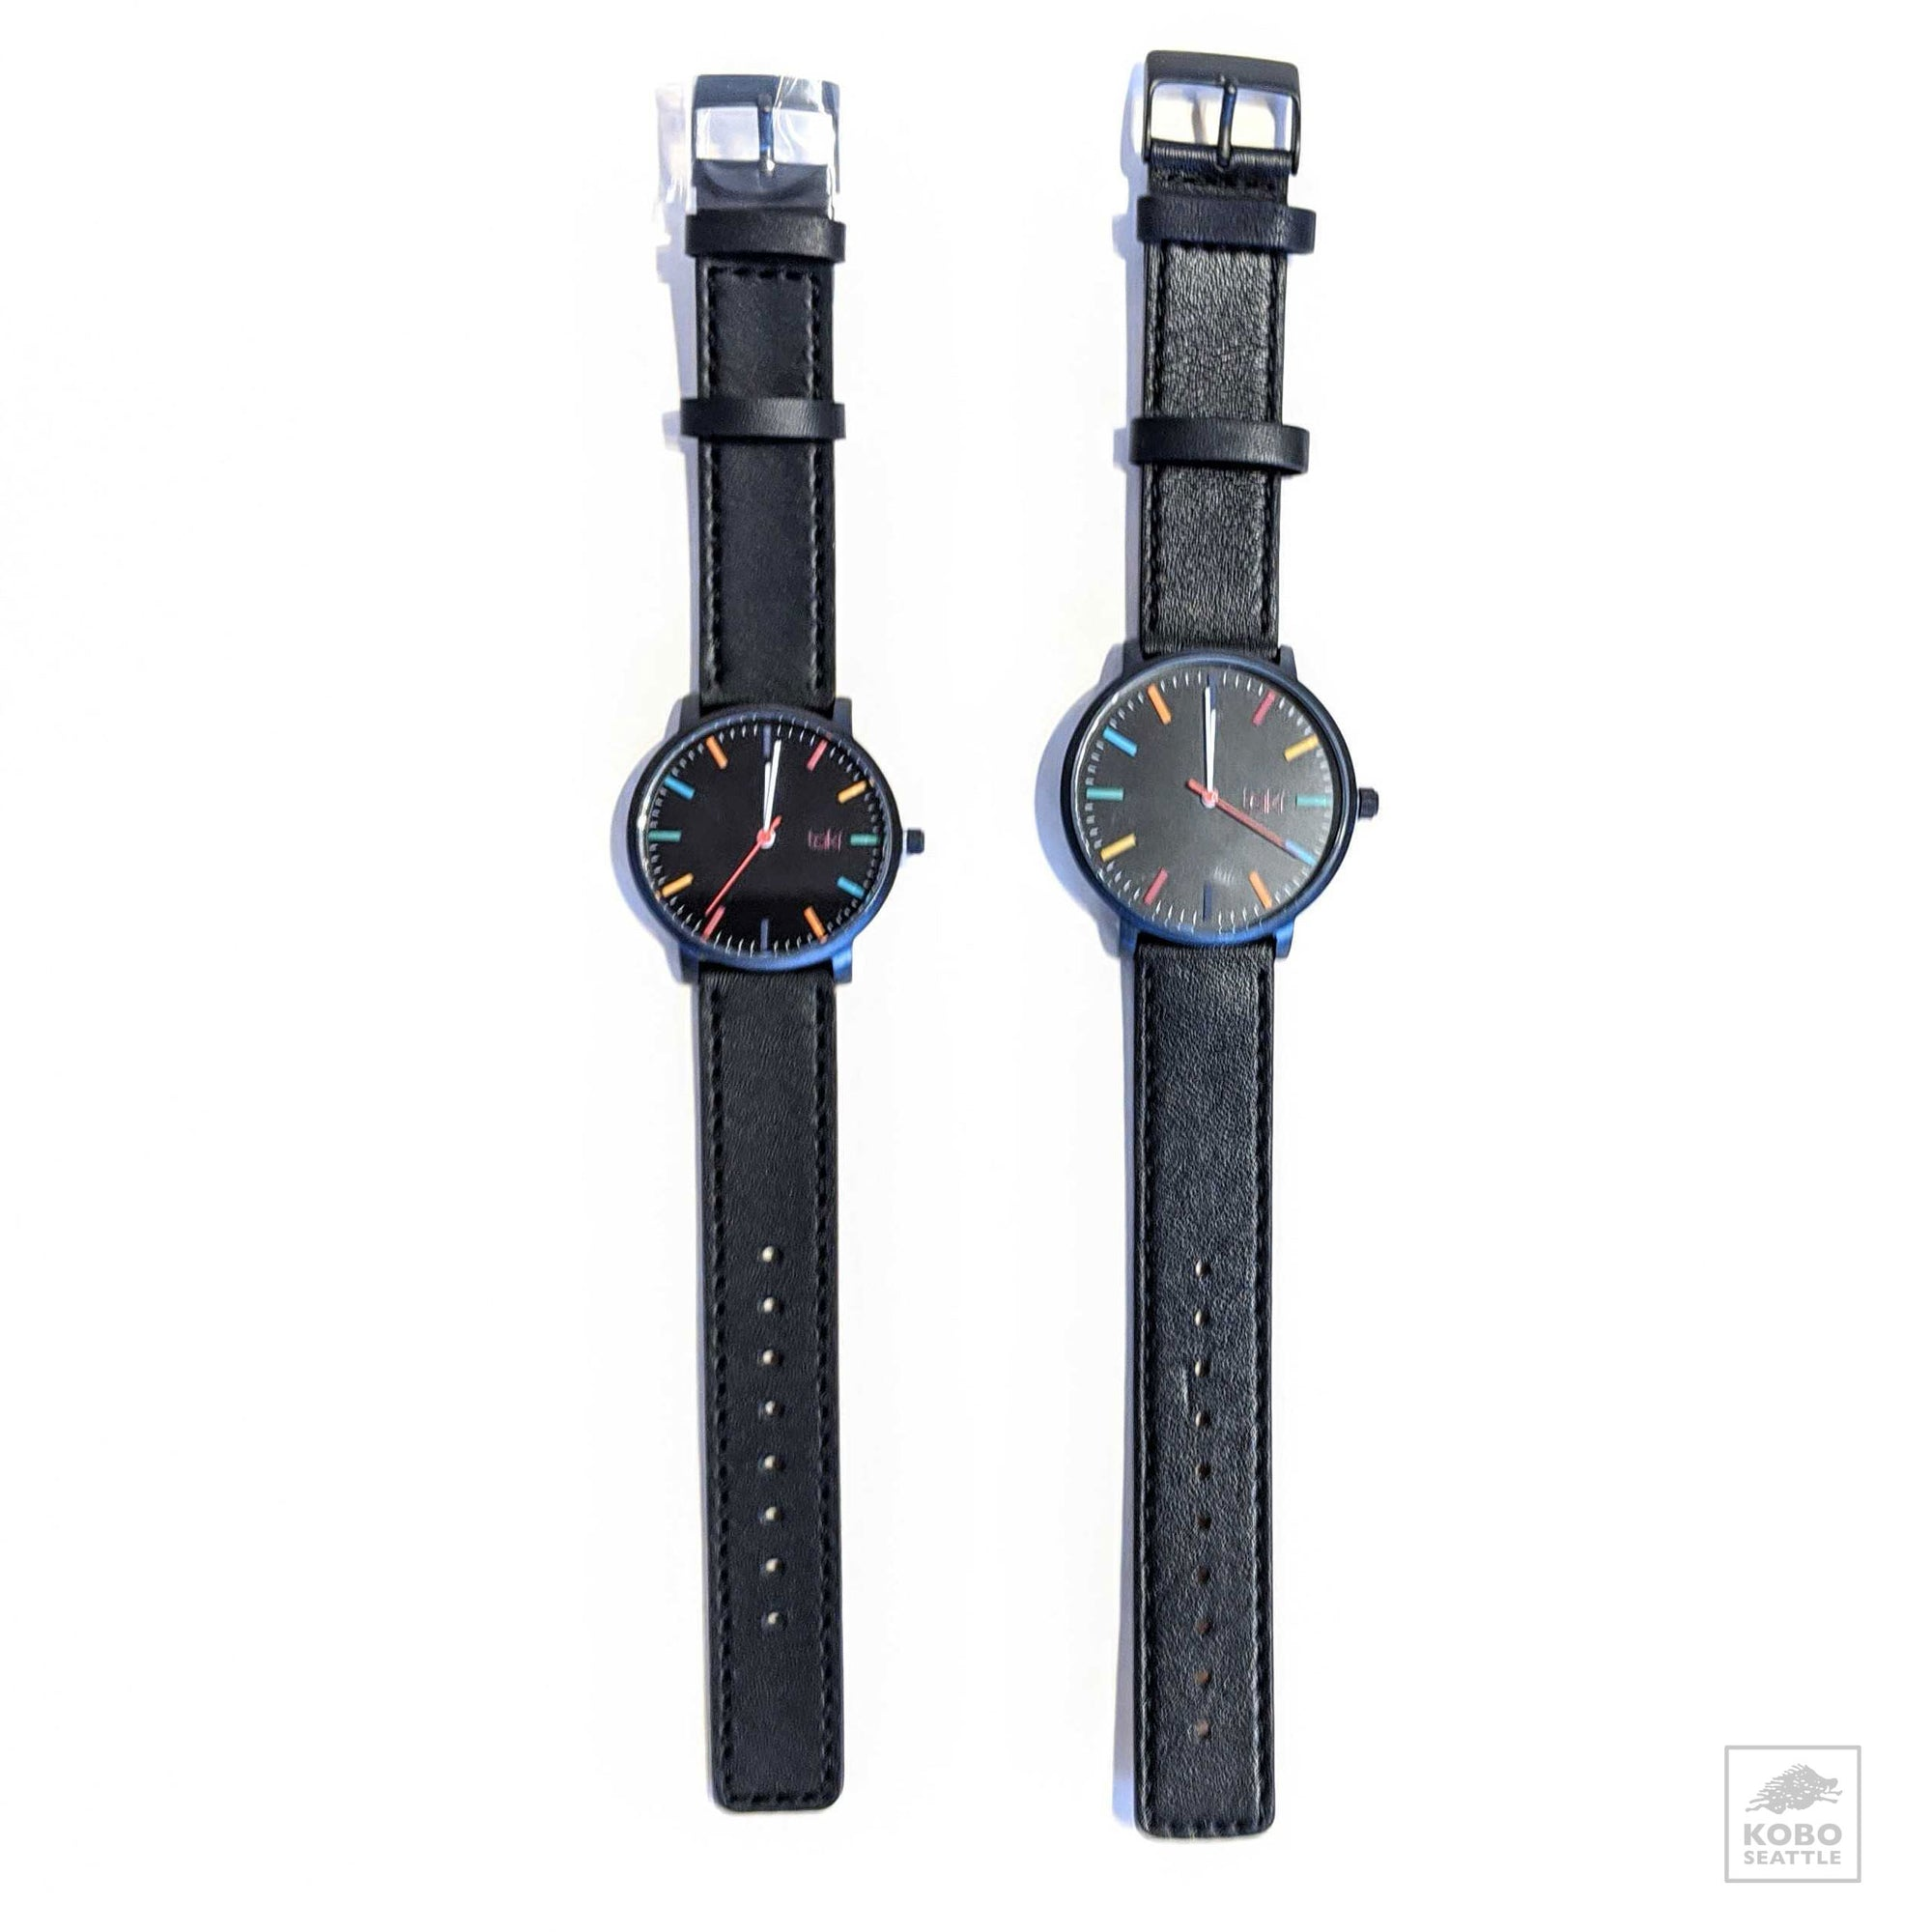 Taki Wrist Watch - Black/Black - two case sizes